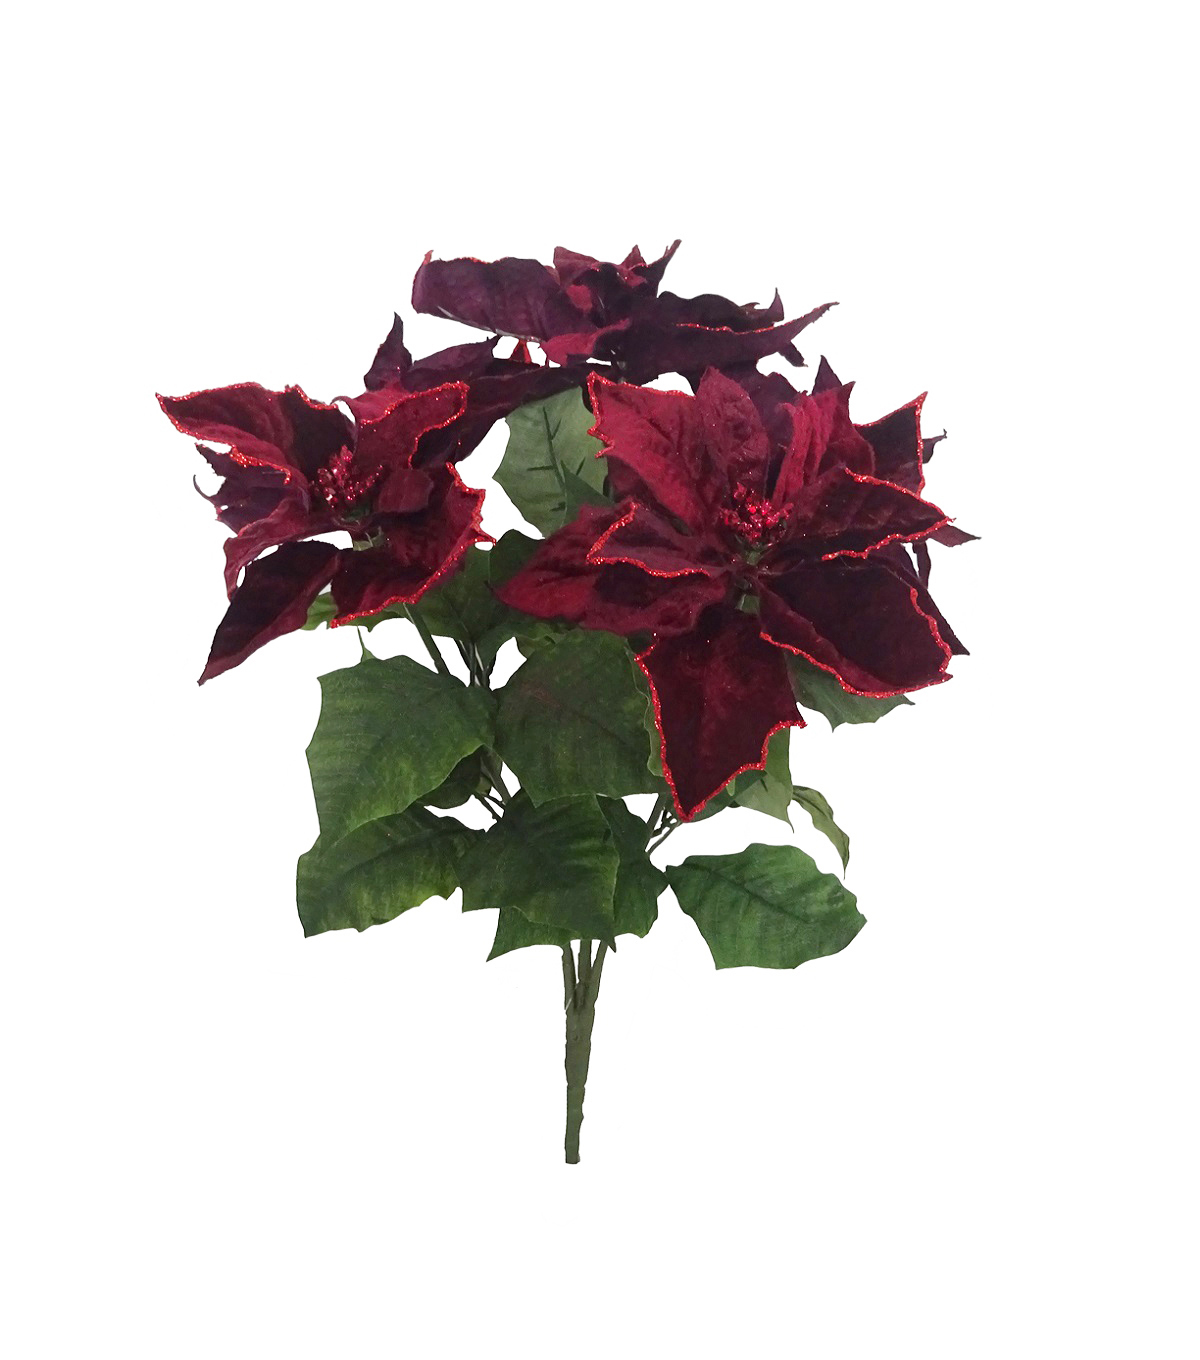 Handmade Holiday Christmas Glitter Poinsettia Bush-Burgundy